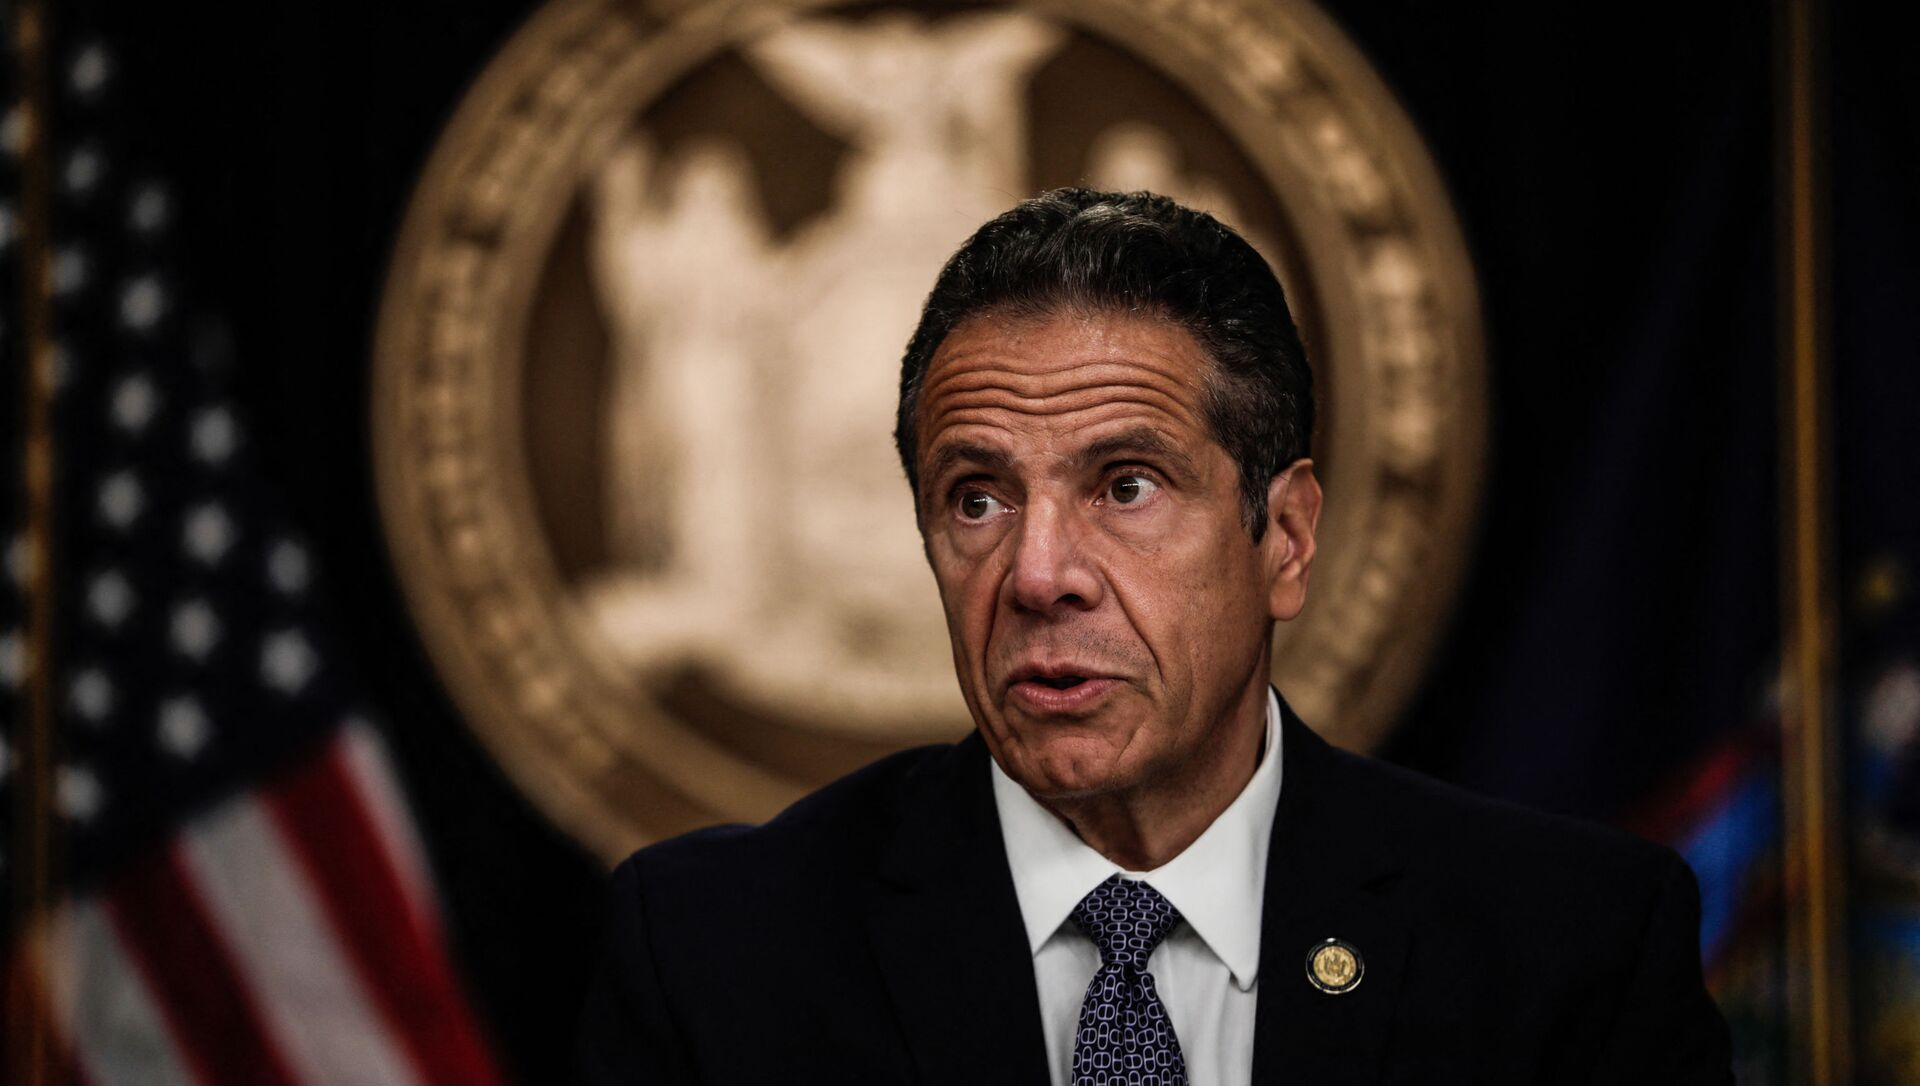 NEW YORK, NY - JULY 01: New York Gov. Andrew Cuomo speaks at a news conference on July 1, 2020 in New York City. The governor expressed alarm at Director of the National Institute for Allergy and Infectious Diseases Dr. Anthony Fauci's recent prediction that there could be 100,000 new Covid-19 cases per day and provided a number of updates related to an increase of states where out-of-state visitors will be required to quarantine for 14 days.  - Sputnik International, 1920, 05.08.2021